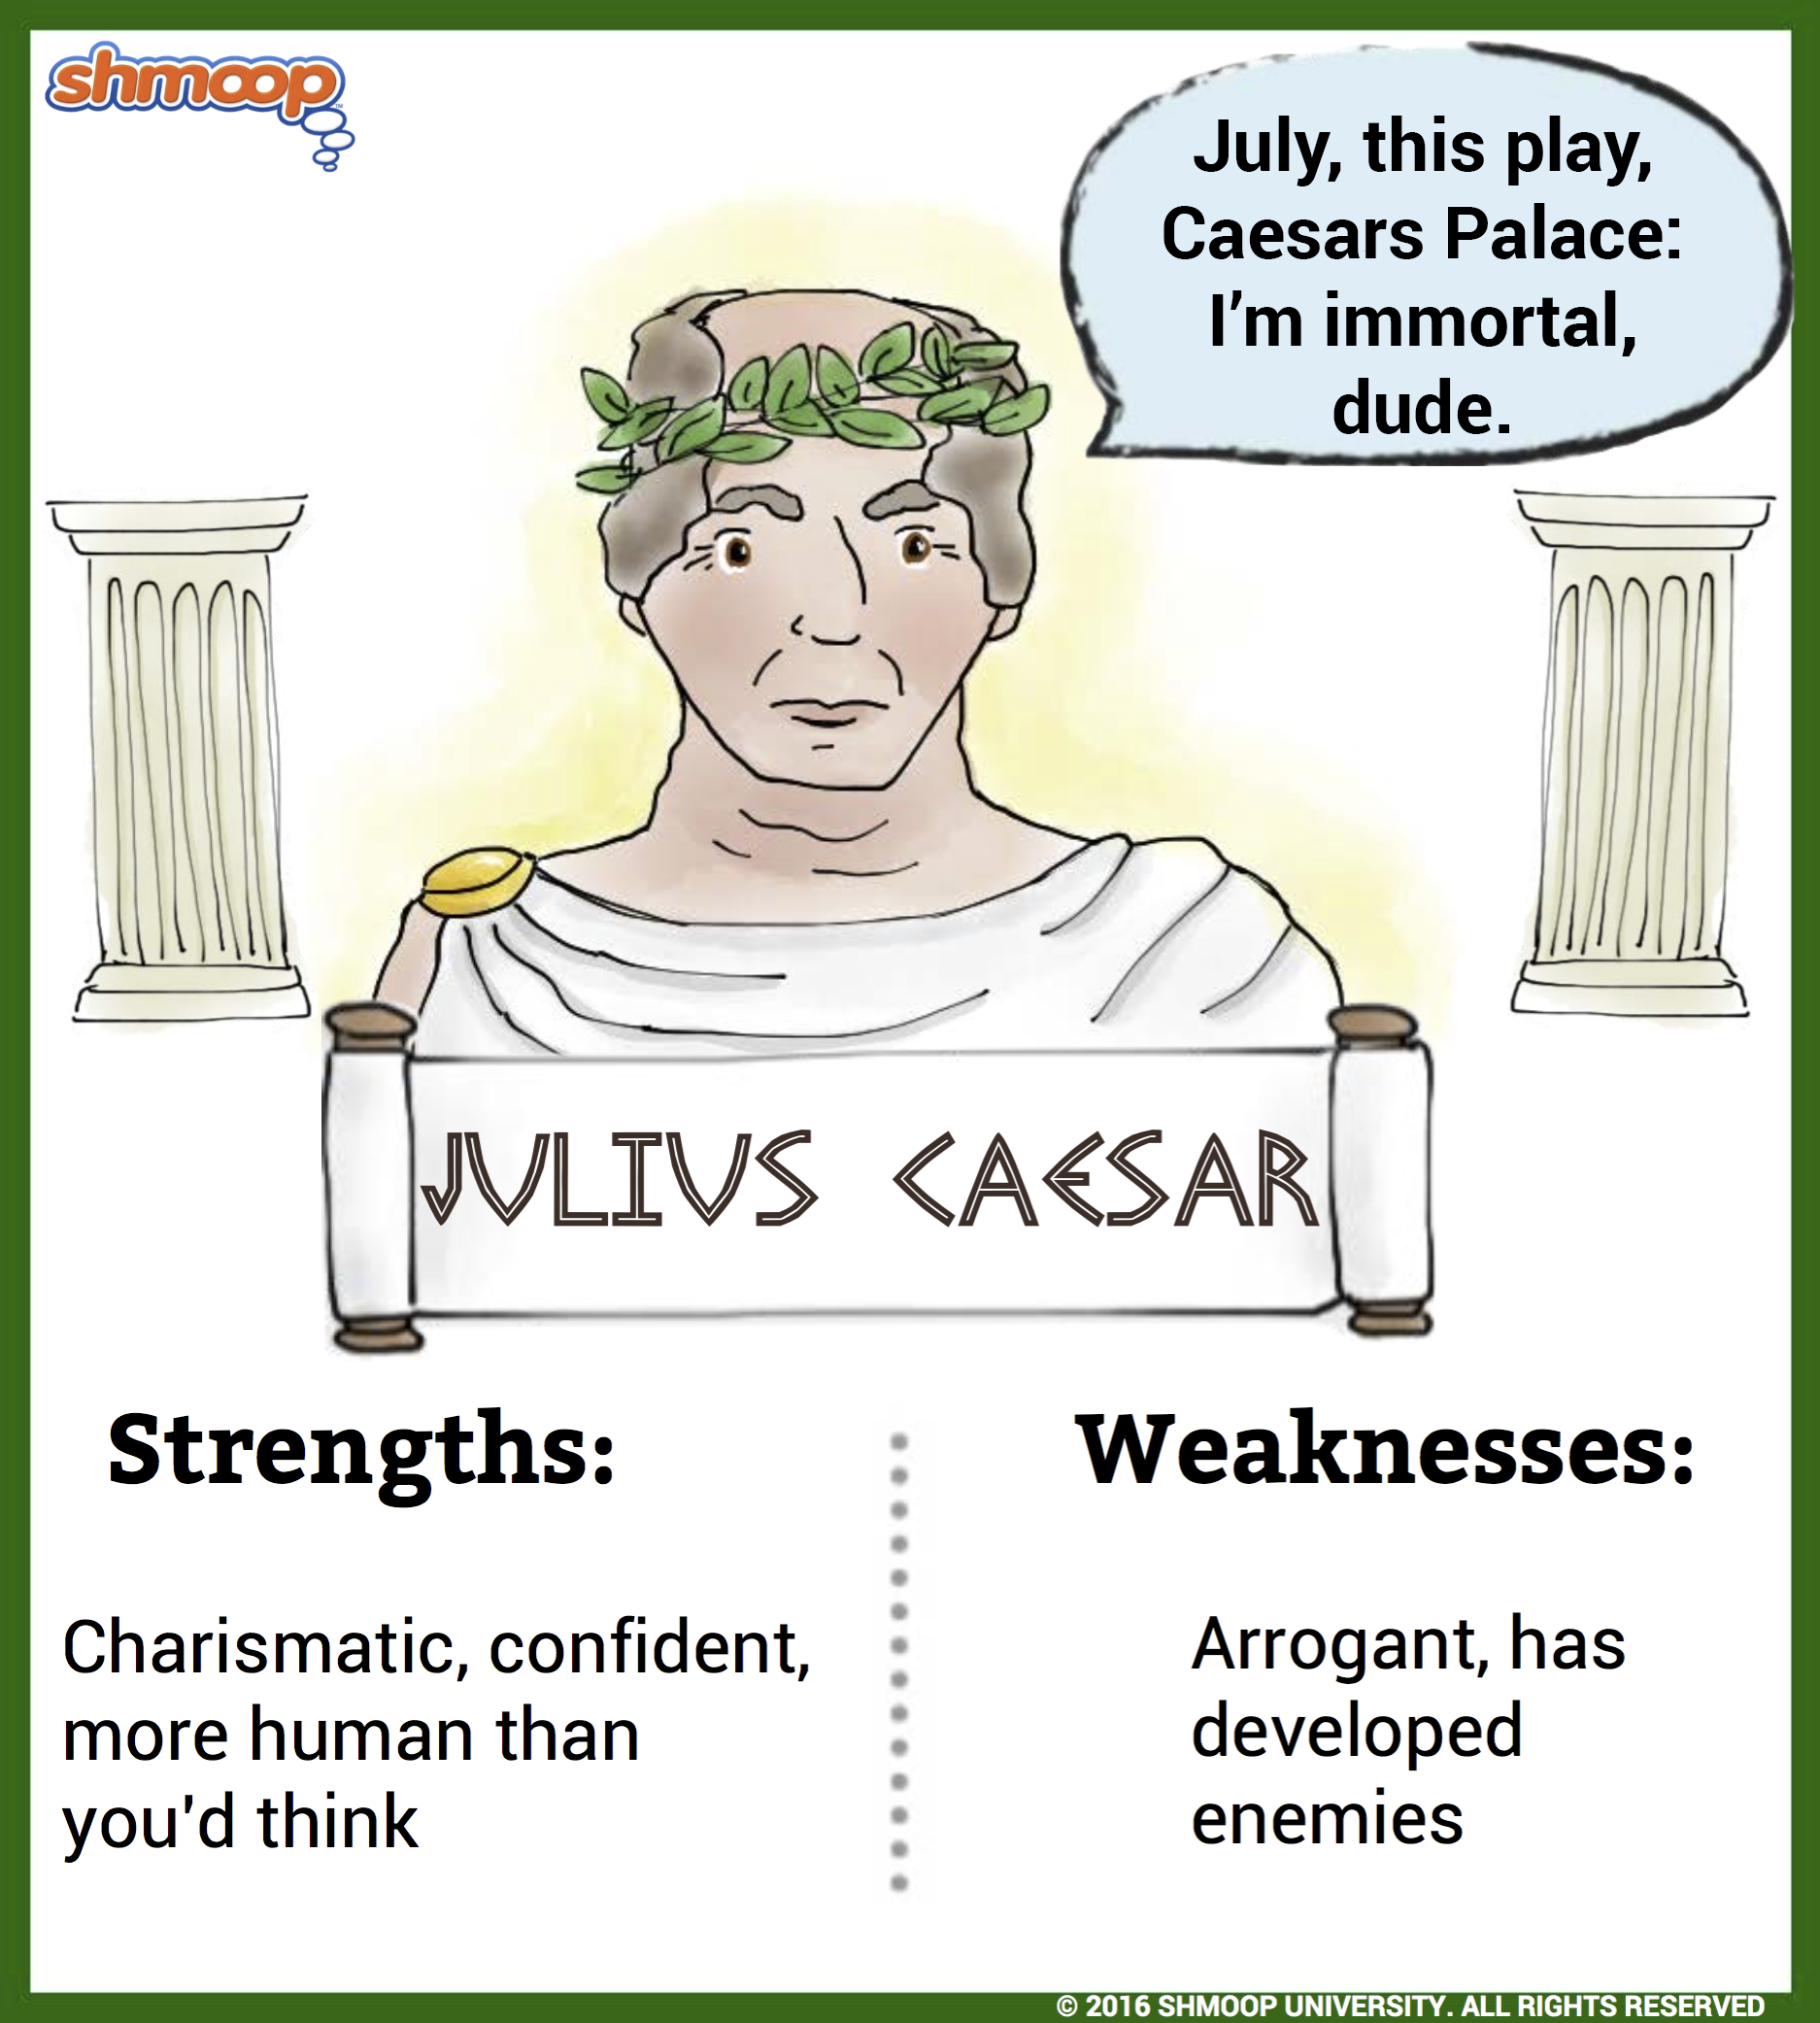 julius caeser essay Included: julius caesar essay content preview text: william shakespeare's magnus opus, the tragedy of julius caesar, has been taught in american high school classrooms for over 100 years.